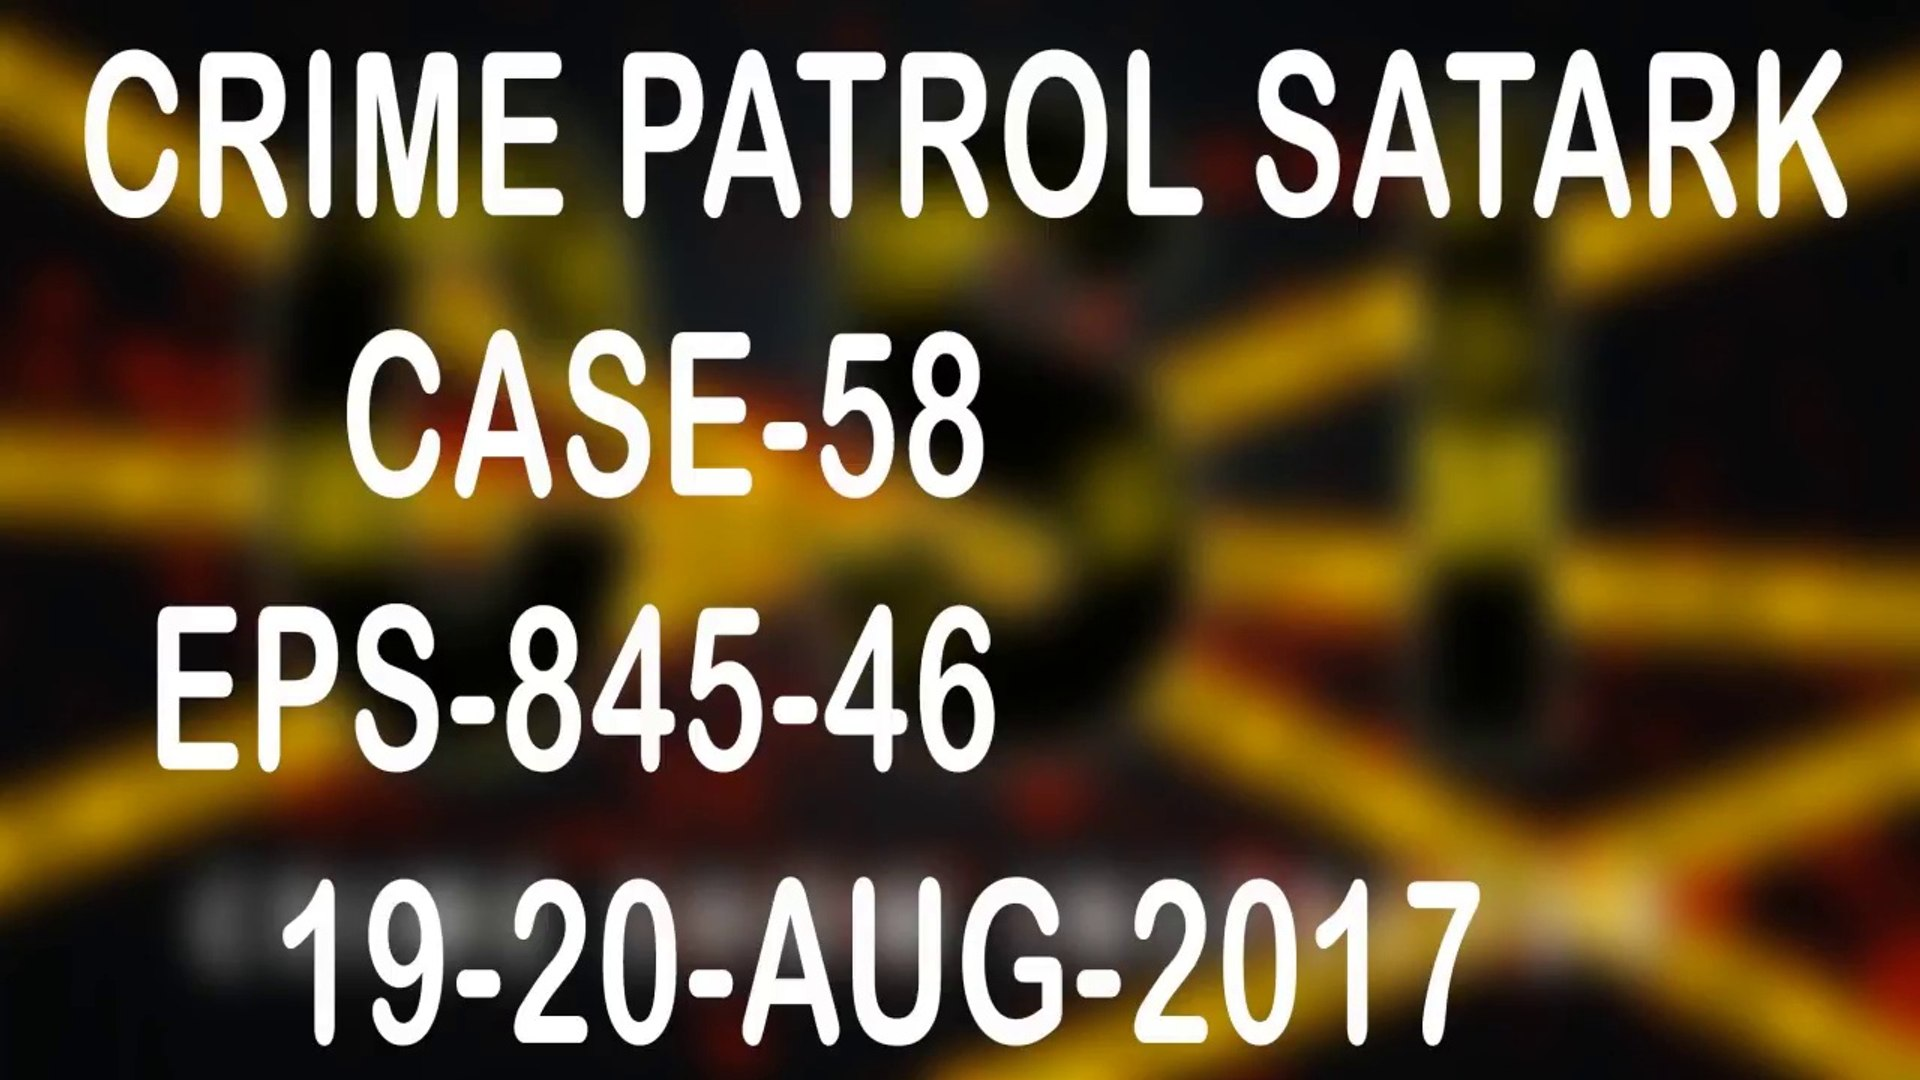 Crime Patrol Satark Eps 845-46 Case-58 19-20-AUG-2017 Real Case